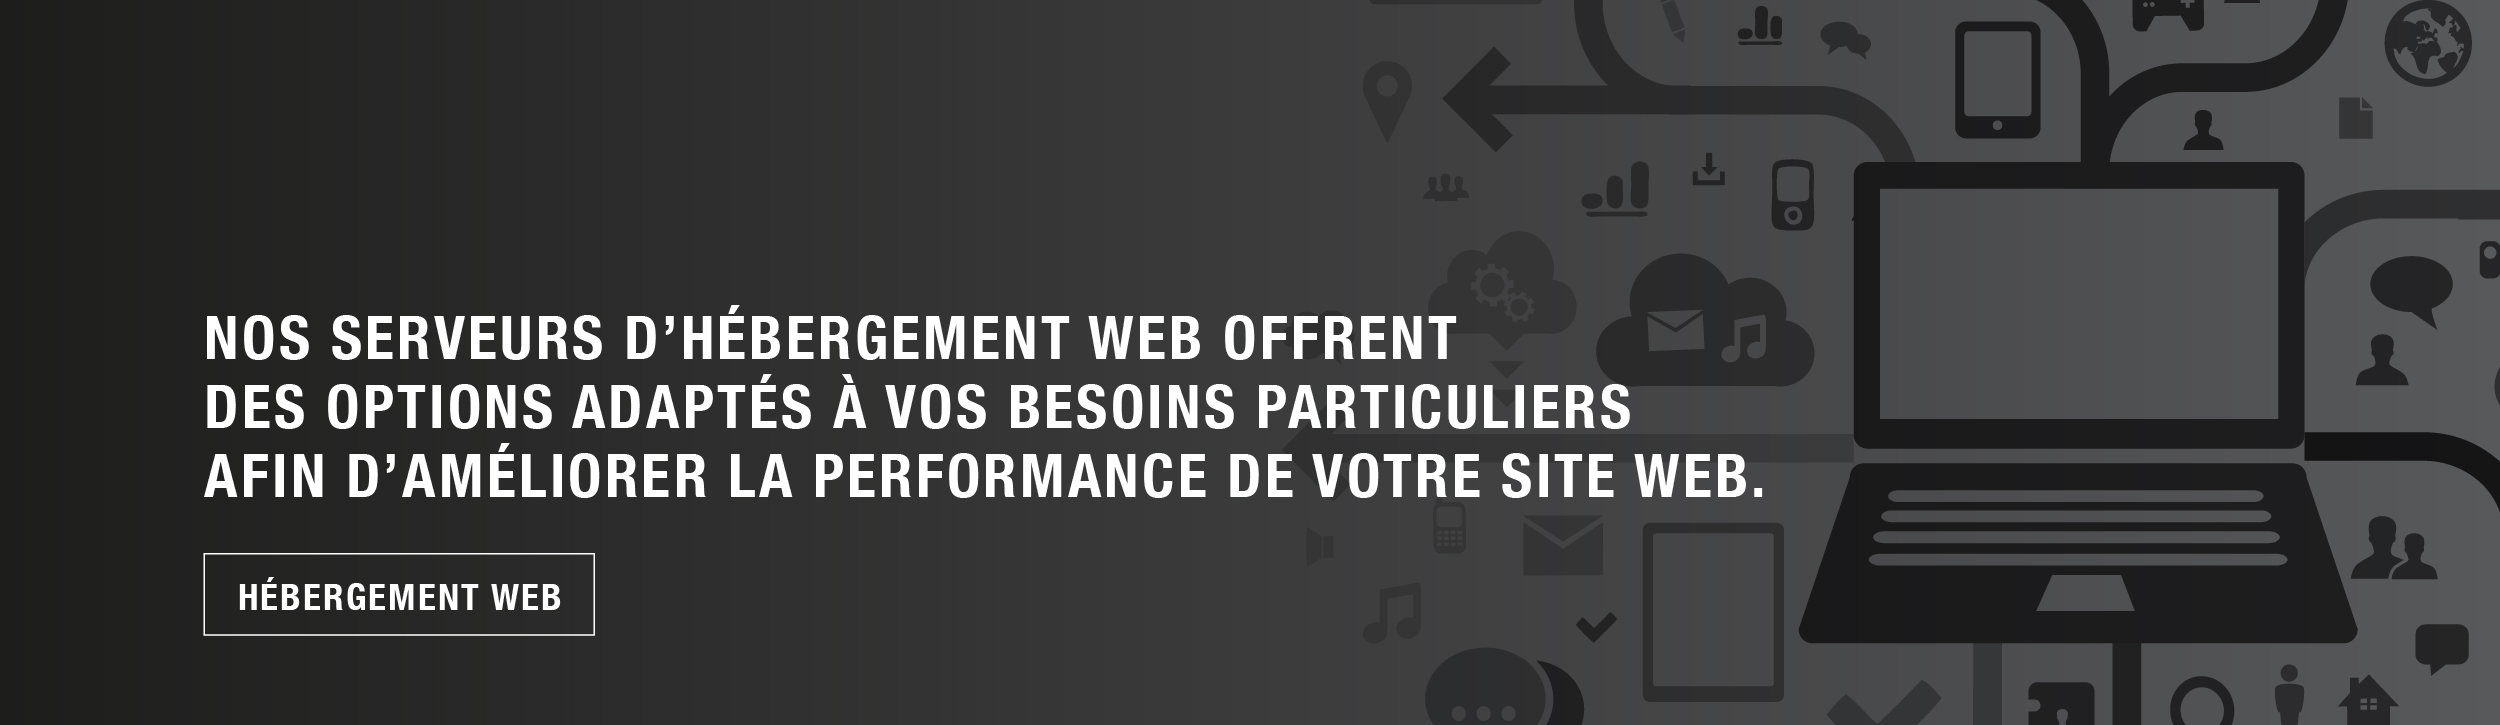 SBinformatique-service-hebergement